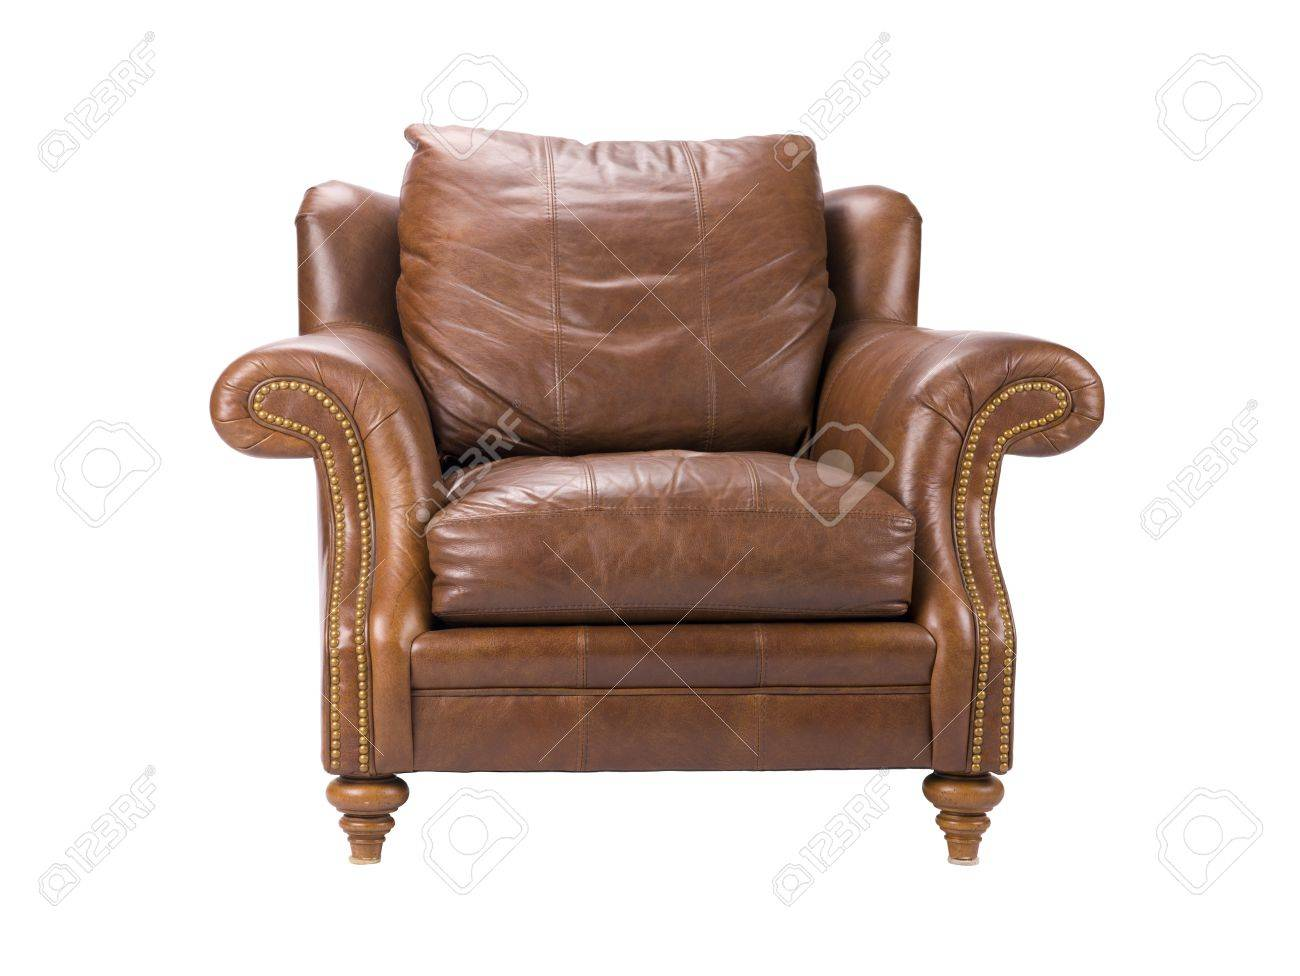 photo a fy looking brown leather armchair